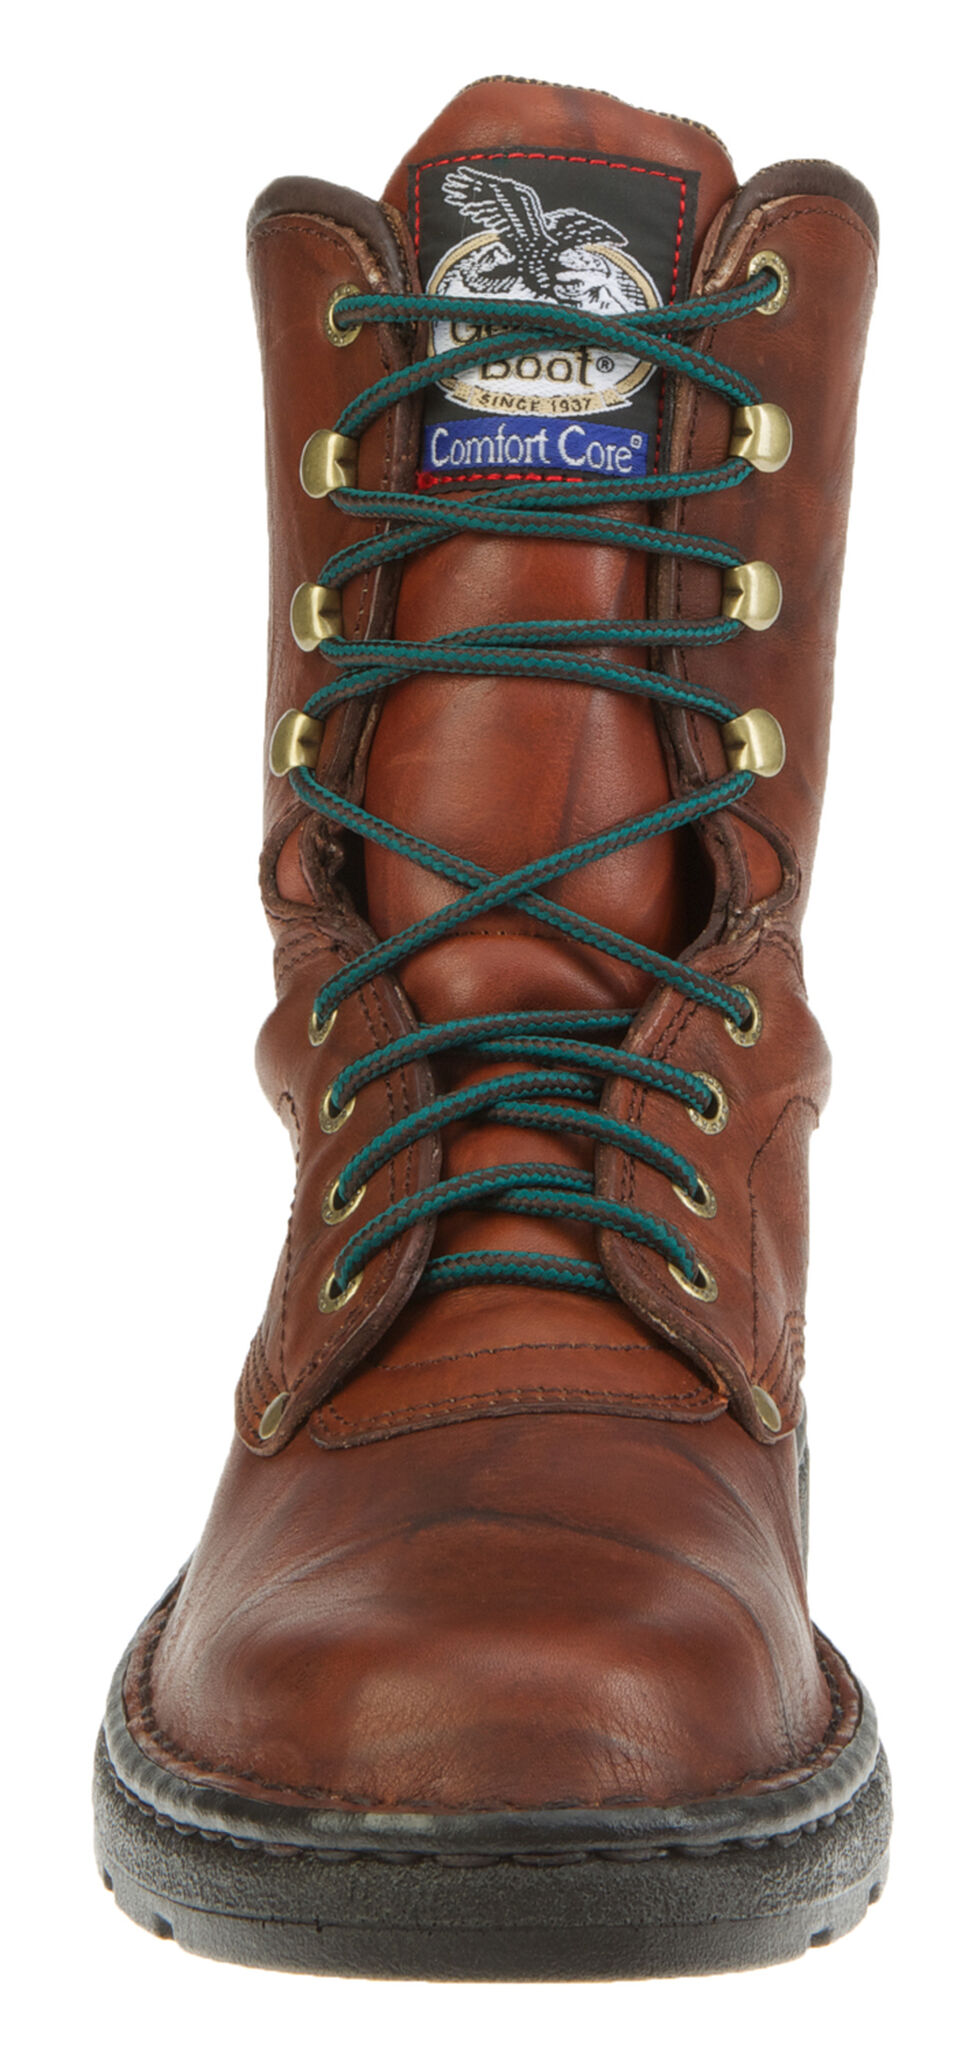 "Georgia Men's 8"" Eagle Light Lace-Up Work Boots - Round Toe, Russet, hi-res"